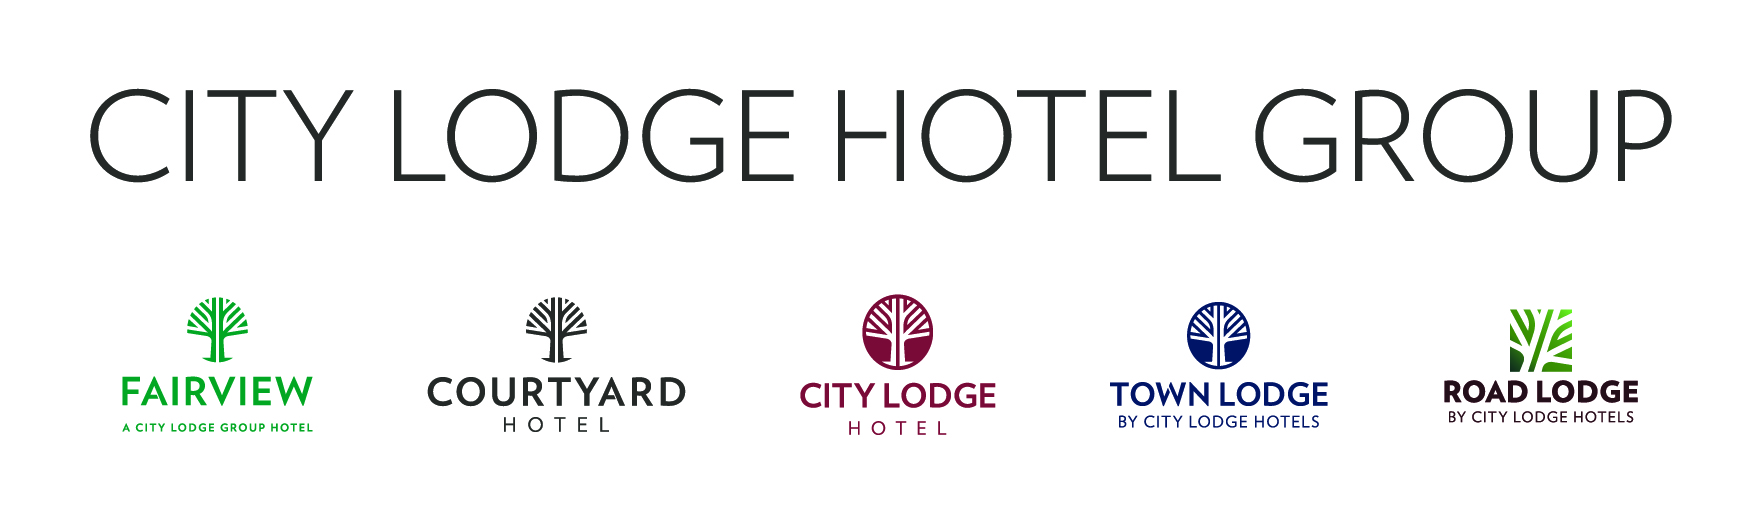 City Lodge Hotel Group Logo